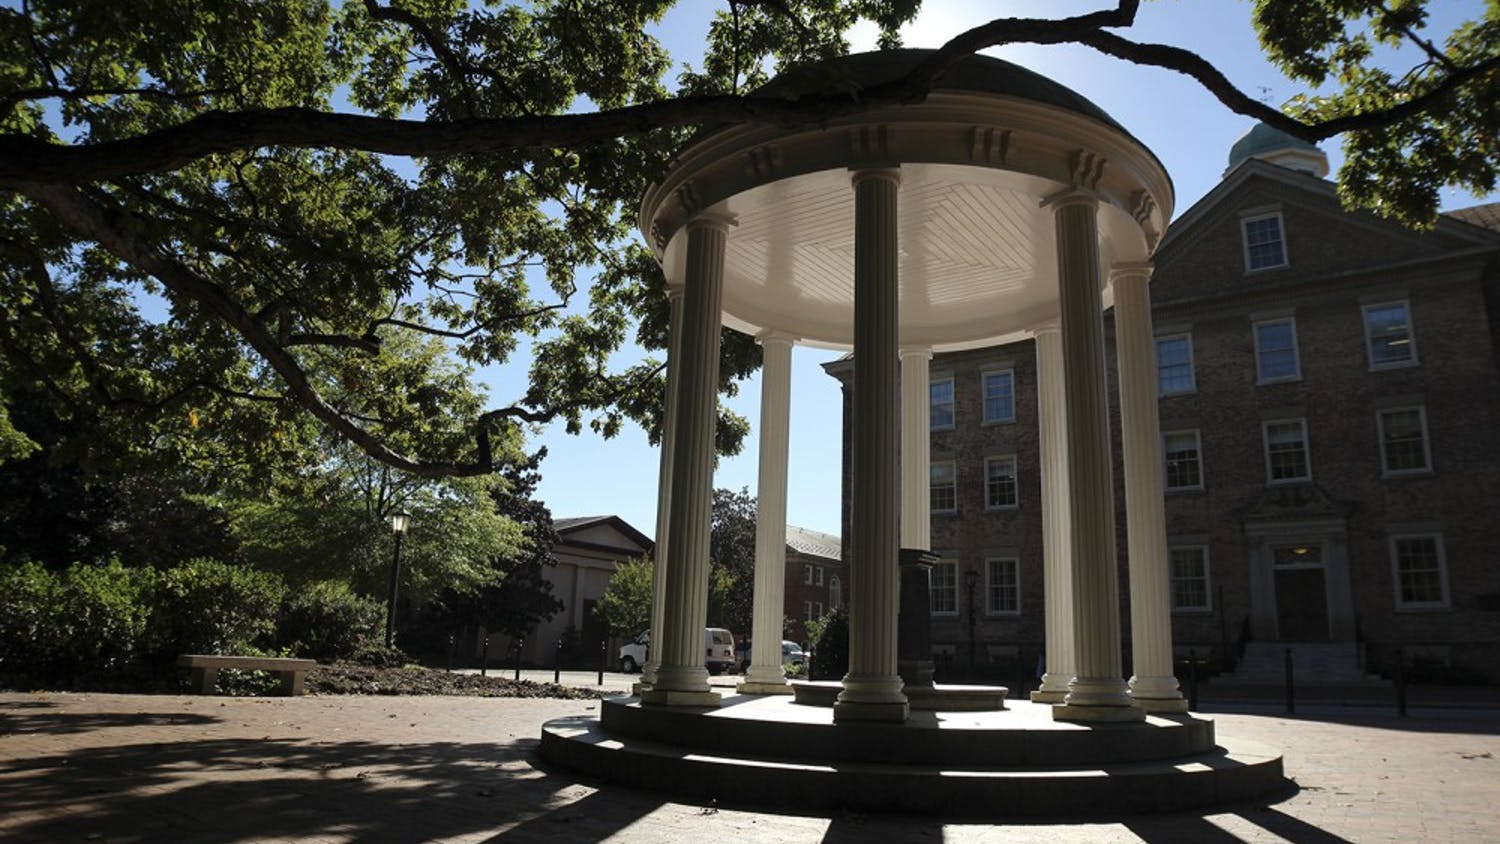 The Old Well, a popular UNC monument, pictured on Wednesday, April 19, 2017.